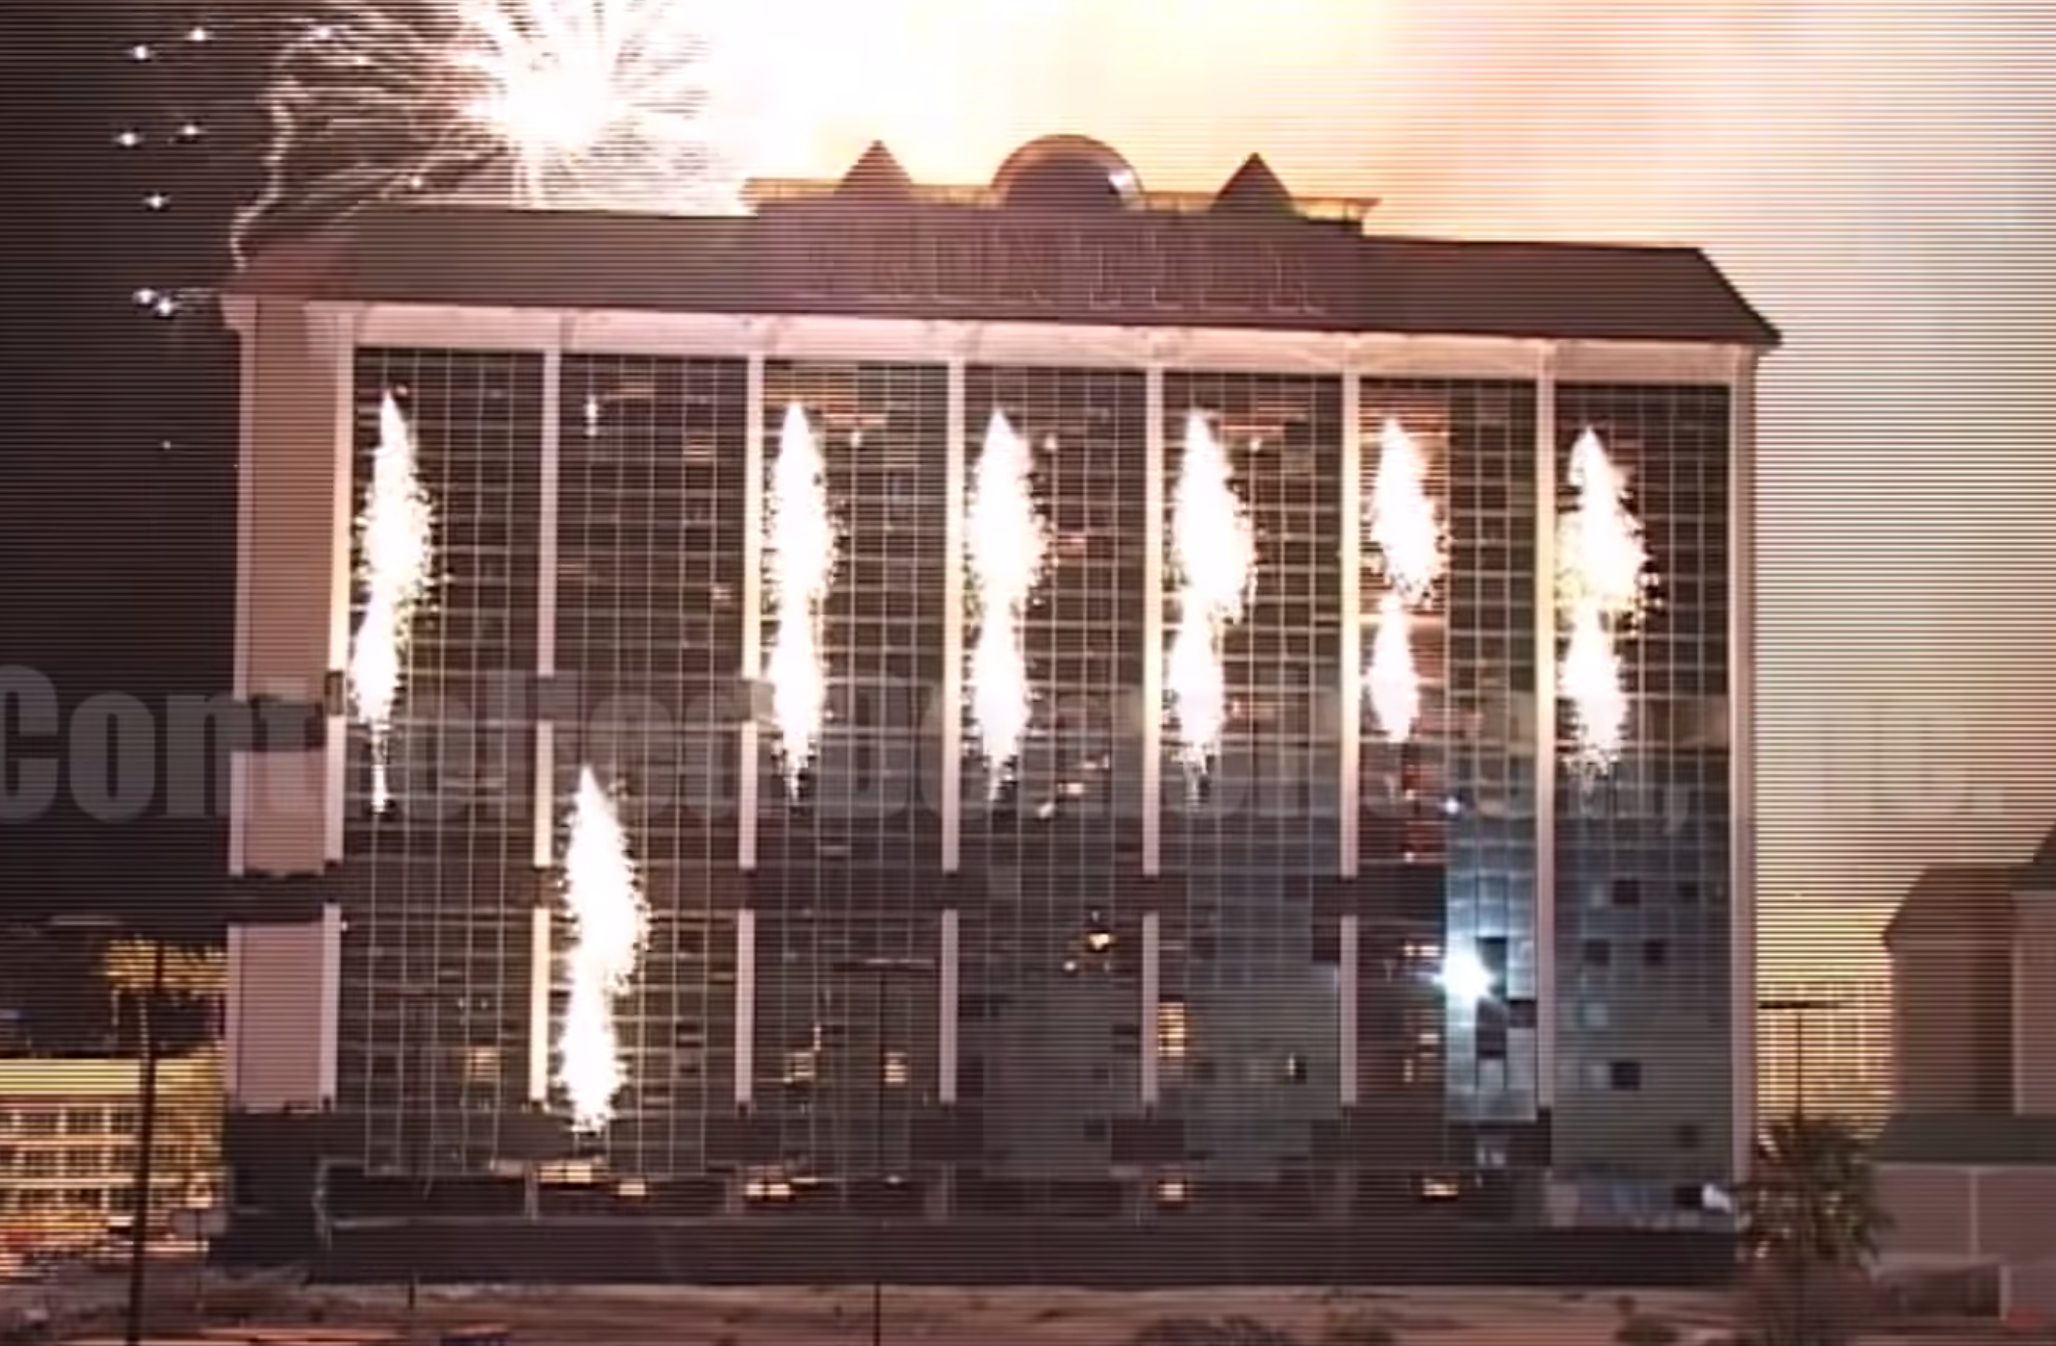 Hotel In Las Vegas Gets Demolished In The Most Las Vegas Way Possible